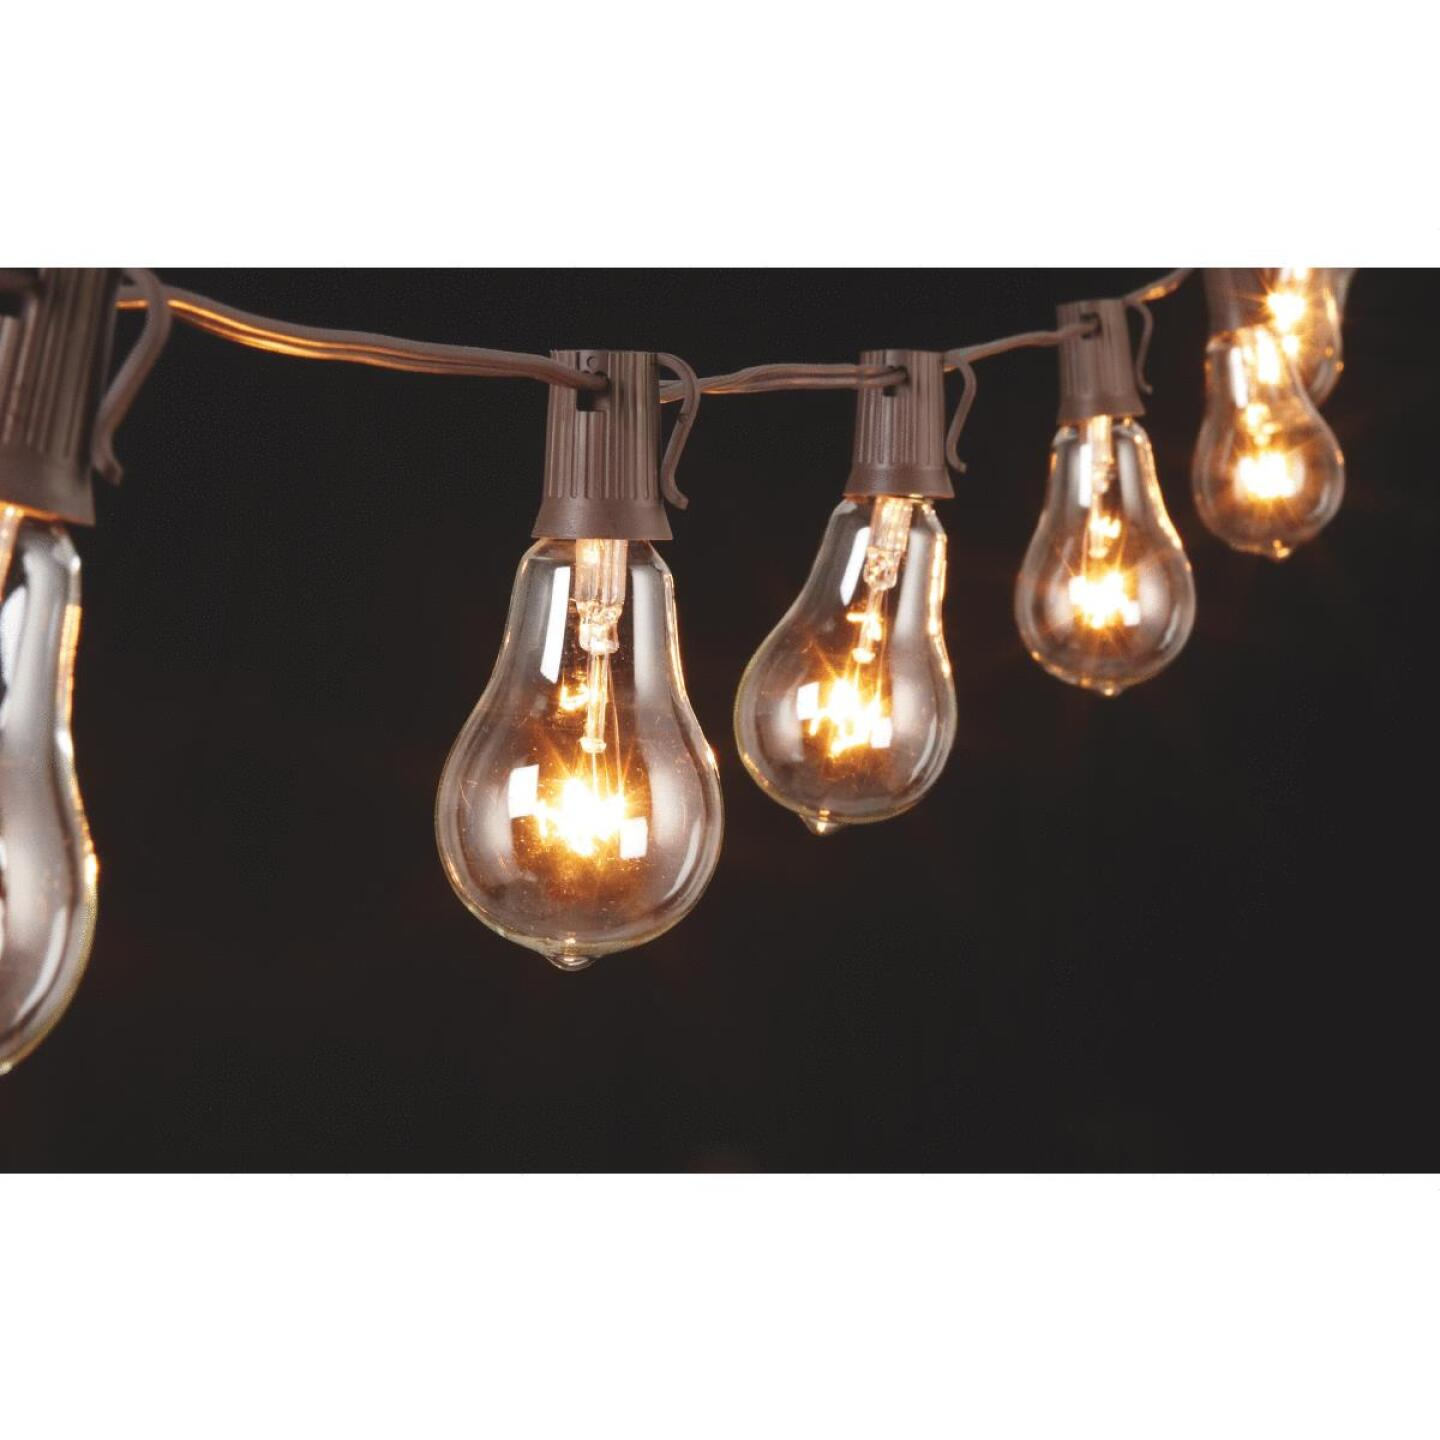 Gerson 10 Ft. 10-Light Clear Bulb String Lights Image 4